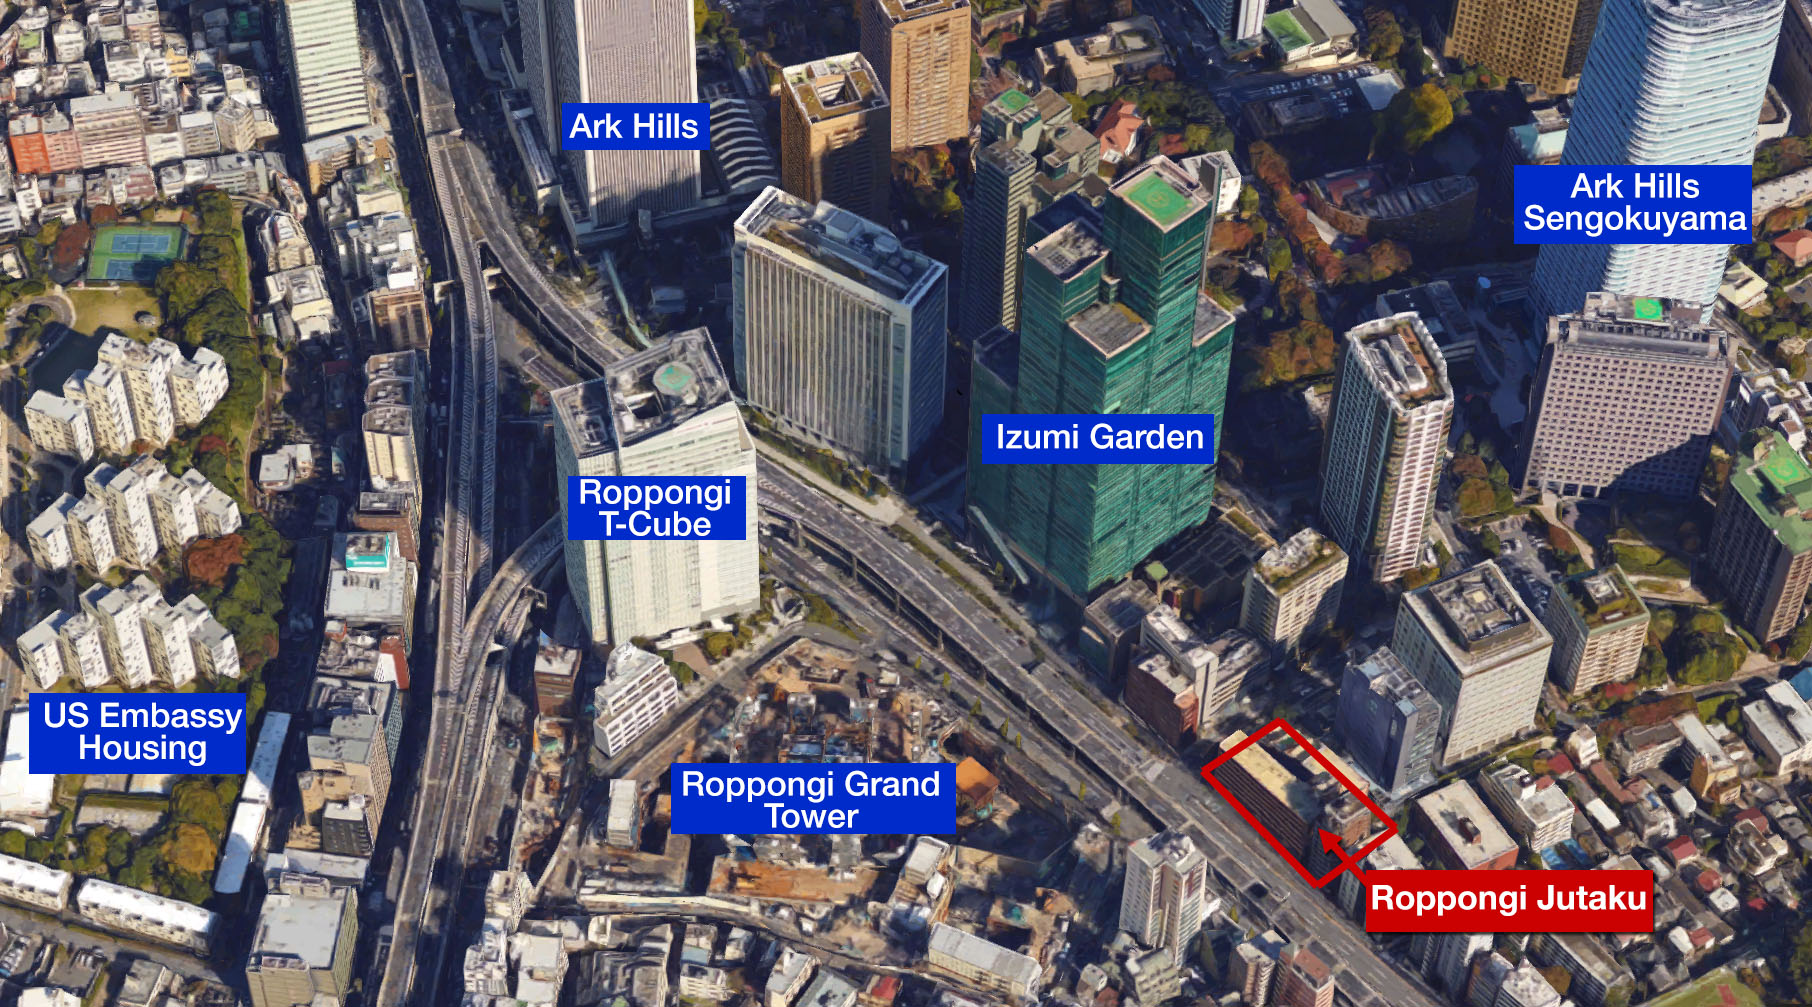 Roppongi land sells for 15 billion Yen (135 million USD)